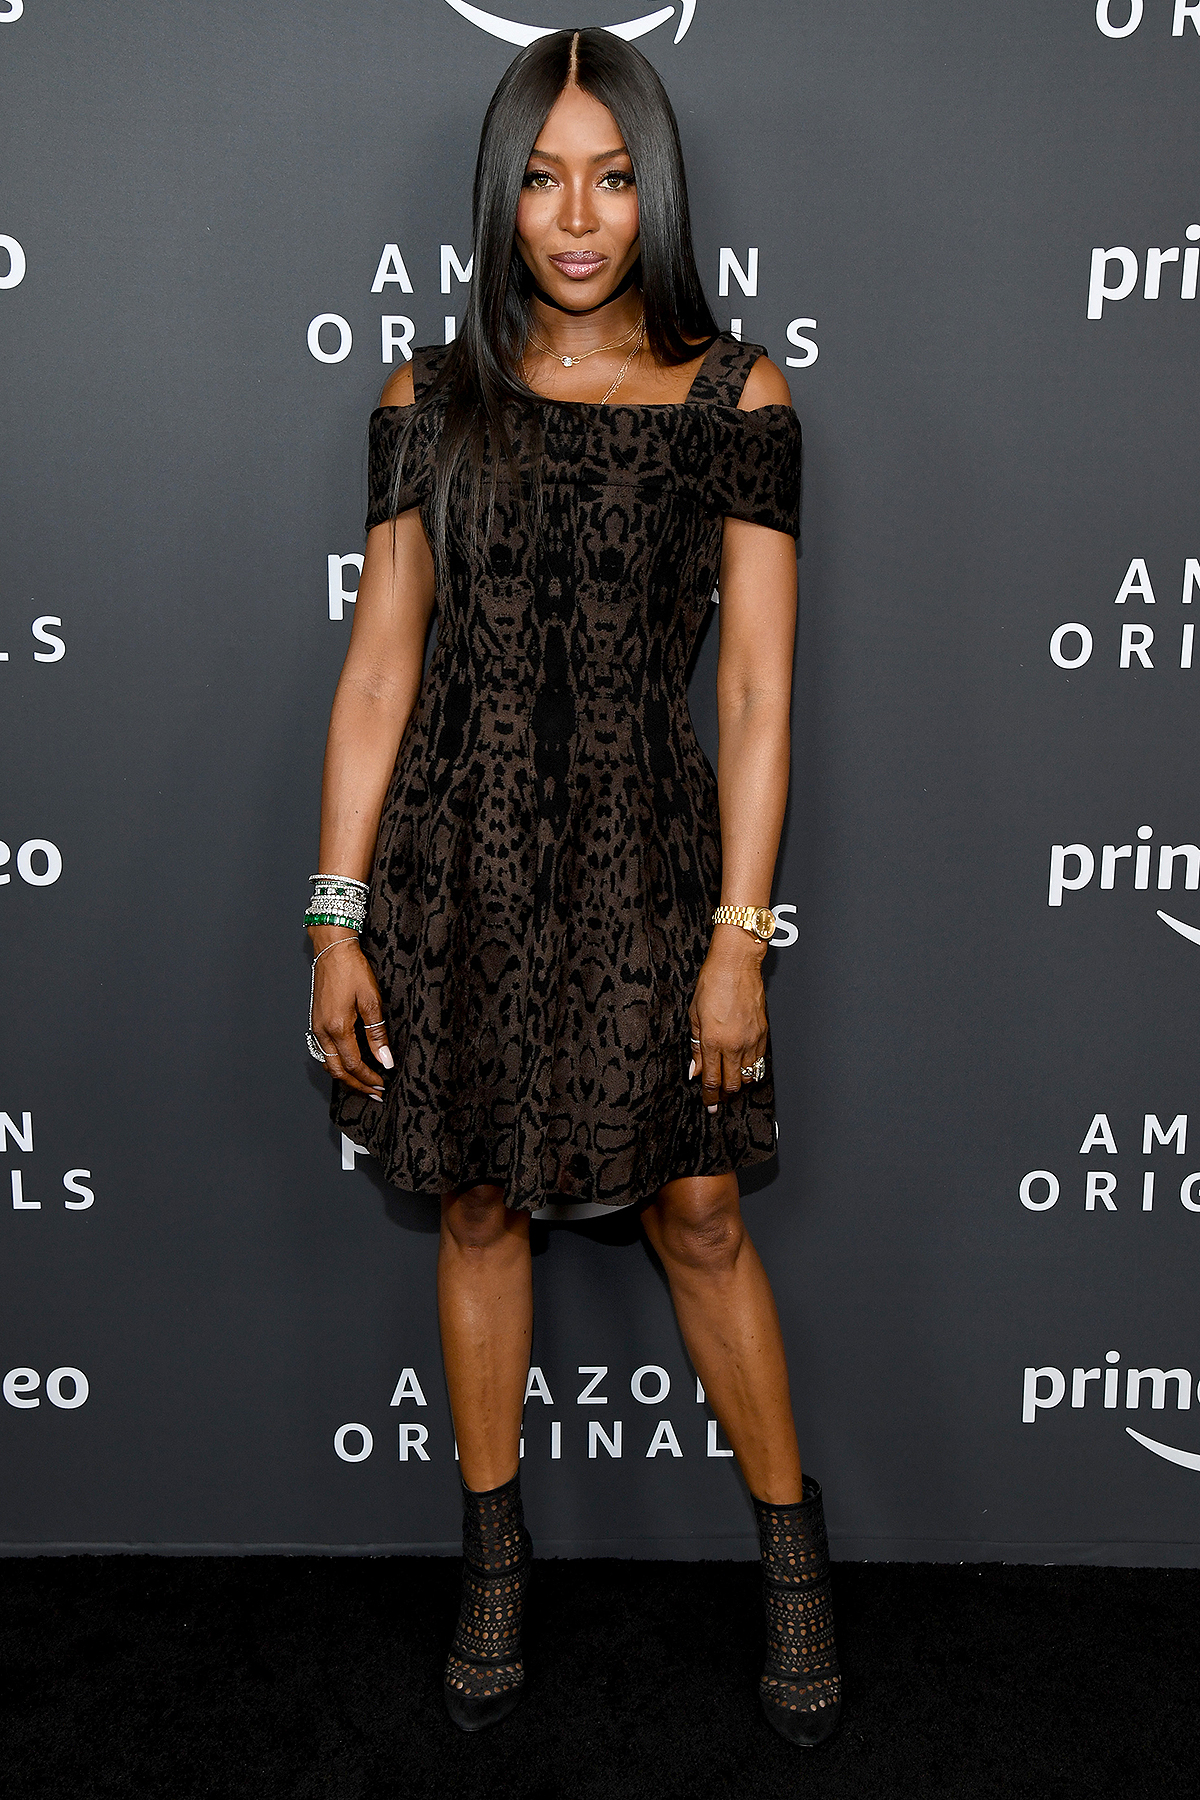 Naomi Campbell attends the Amazon Studios 2020 Winter TCA Press Tour at Langham Hotel on January 14, 2020